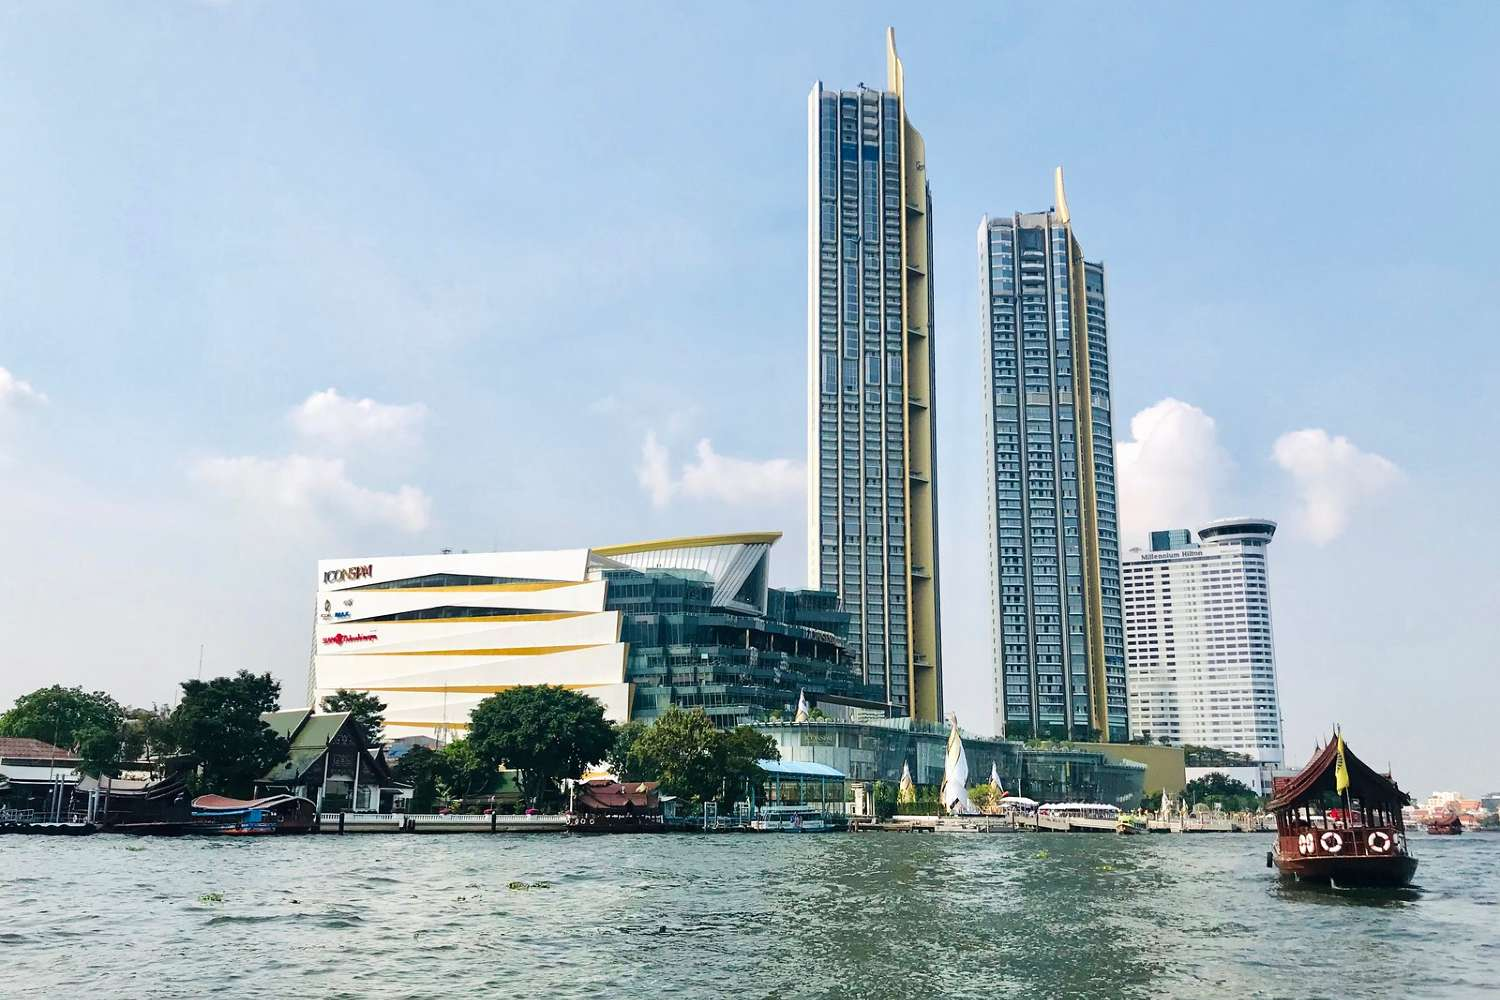 ICONSIAM on the Chao Phraya River in Bangkok seen from afar